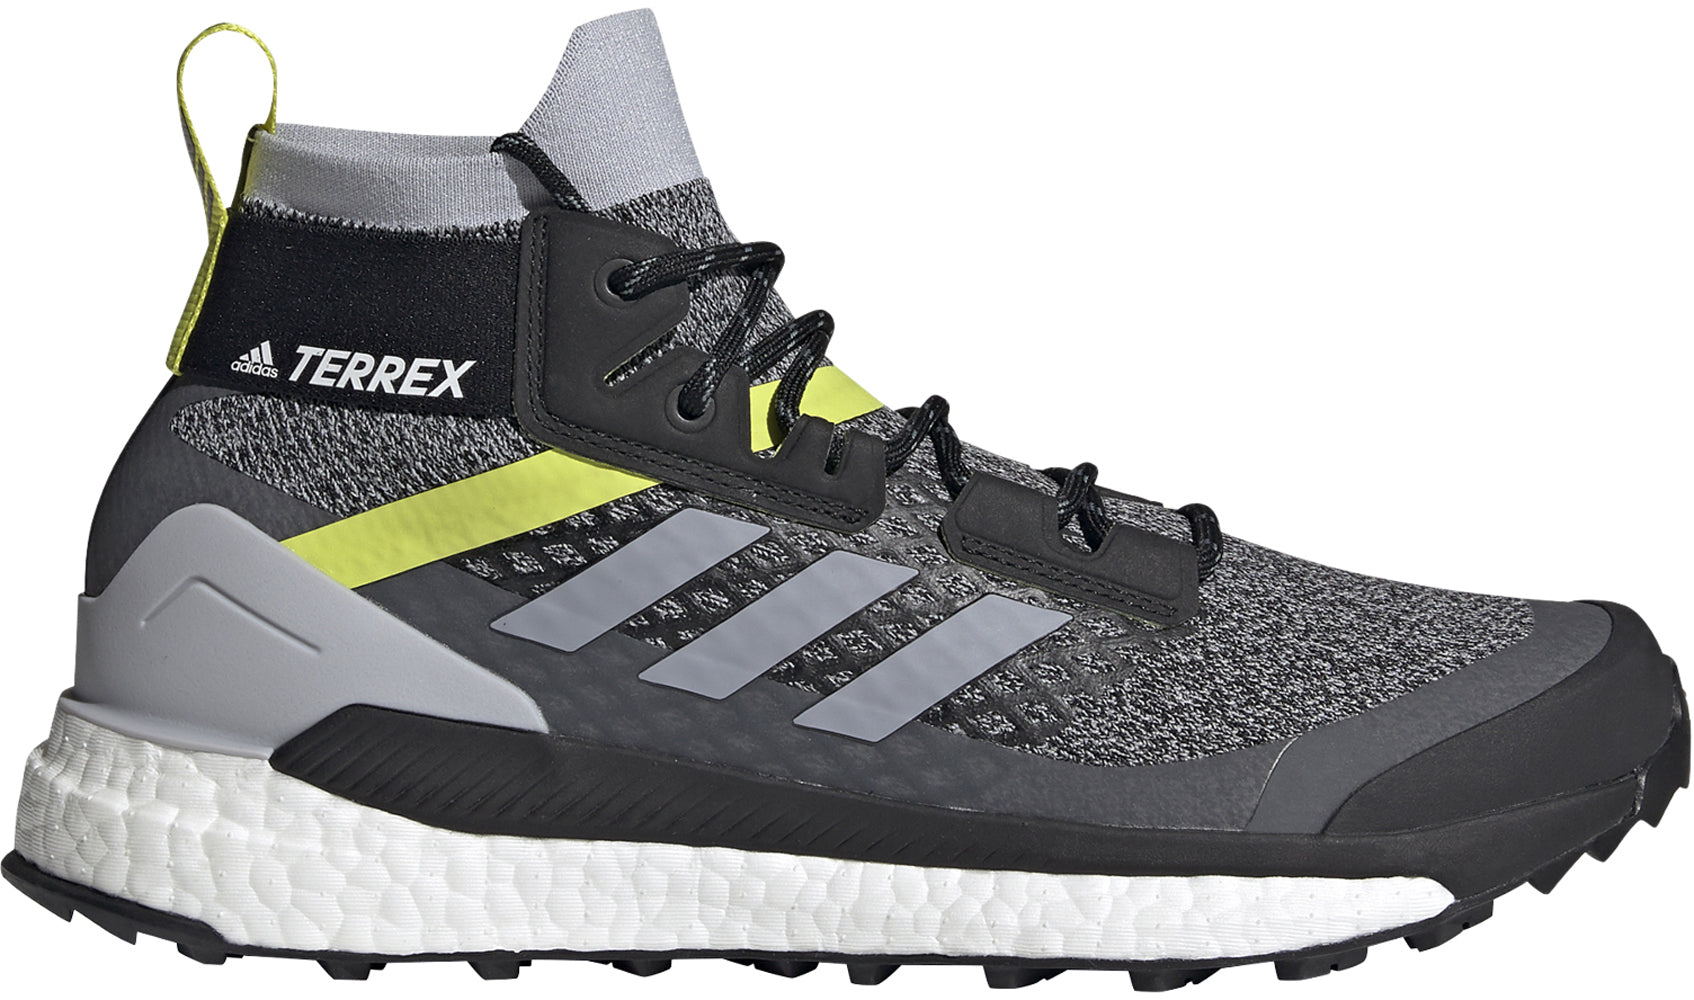 Men's adidas Terrex Free Hiker Primeblue Hiking Shoe in Halo Silver/Halo Silver/Core Black from the side